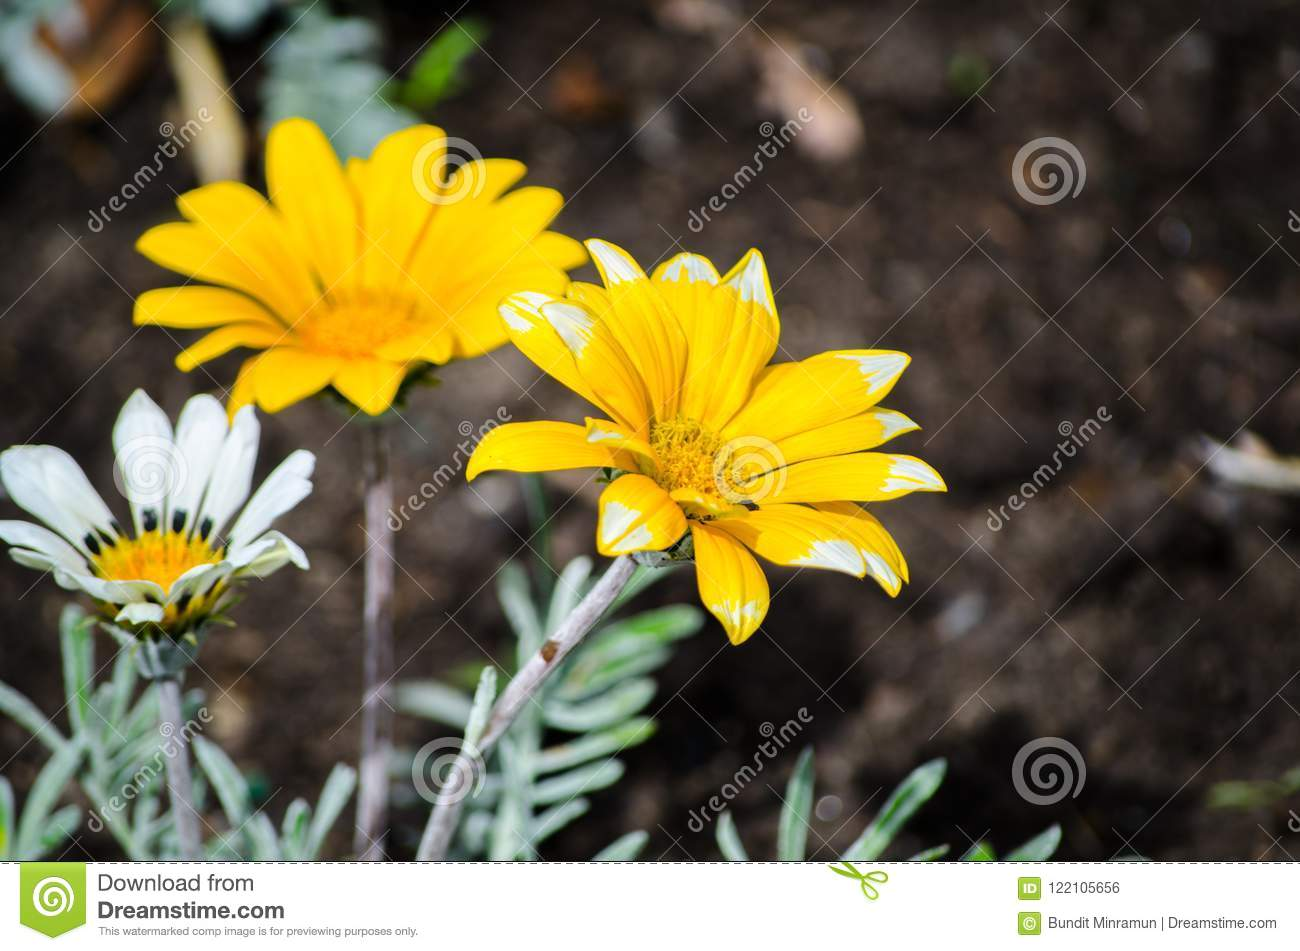 Beautiful yellow Gazania rigens plant grow on a flower bed in a spring season at a botanical garden.